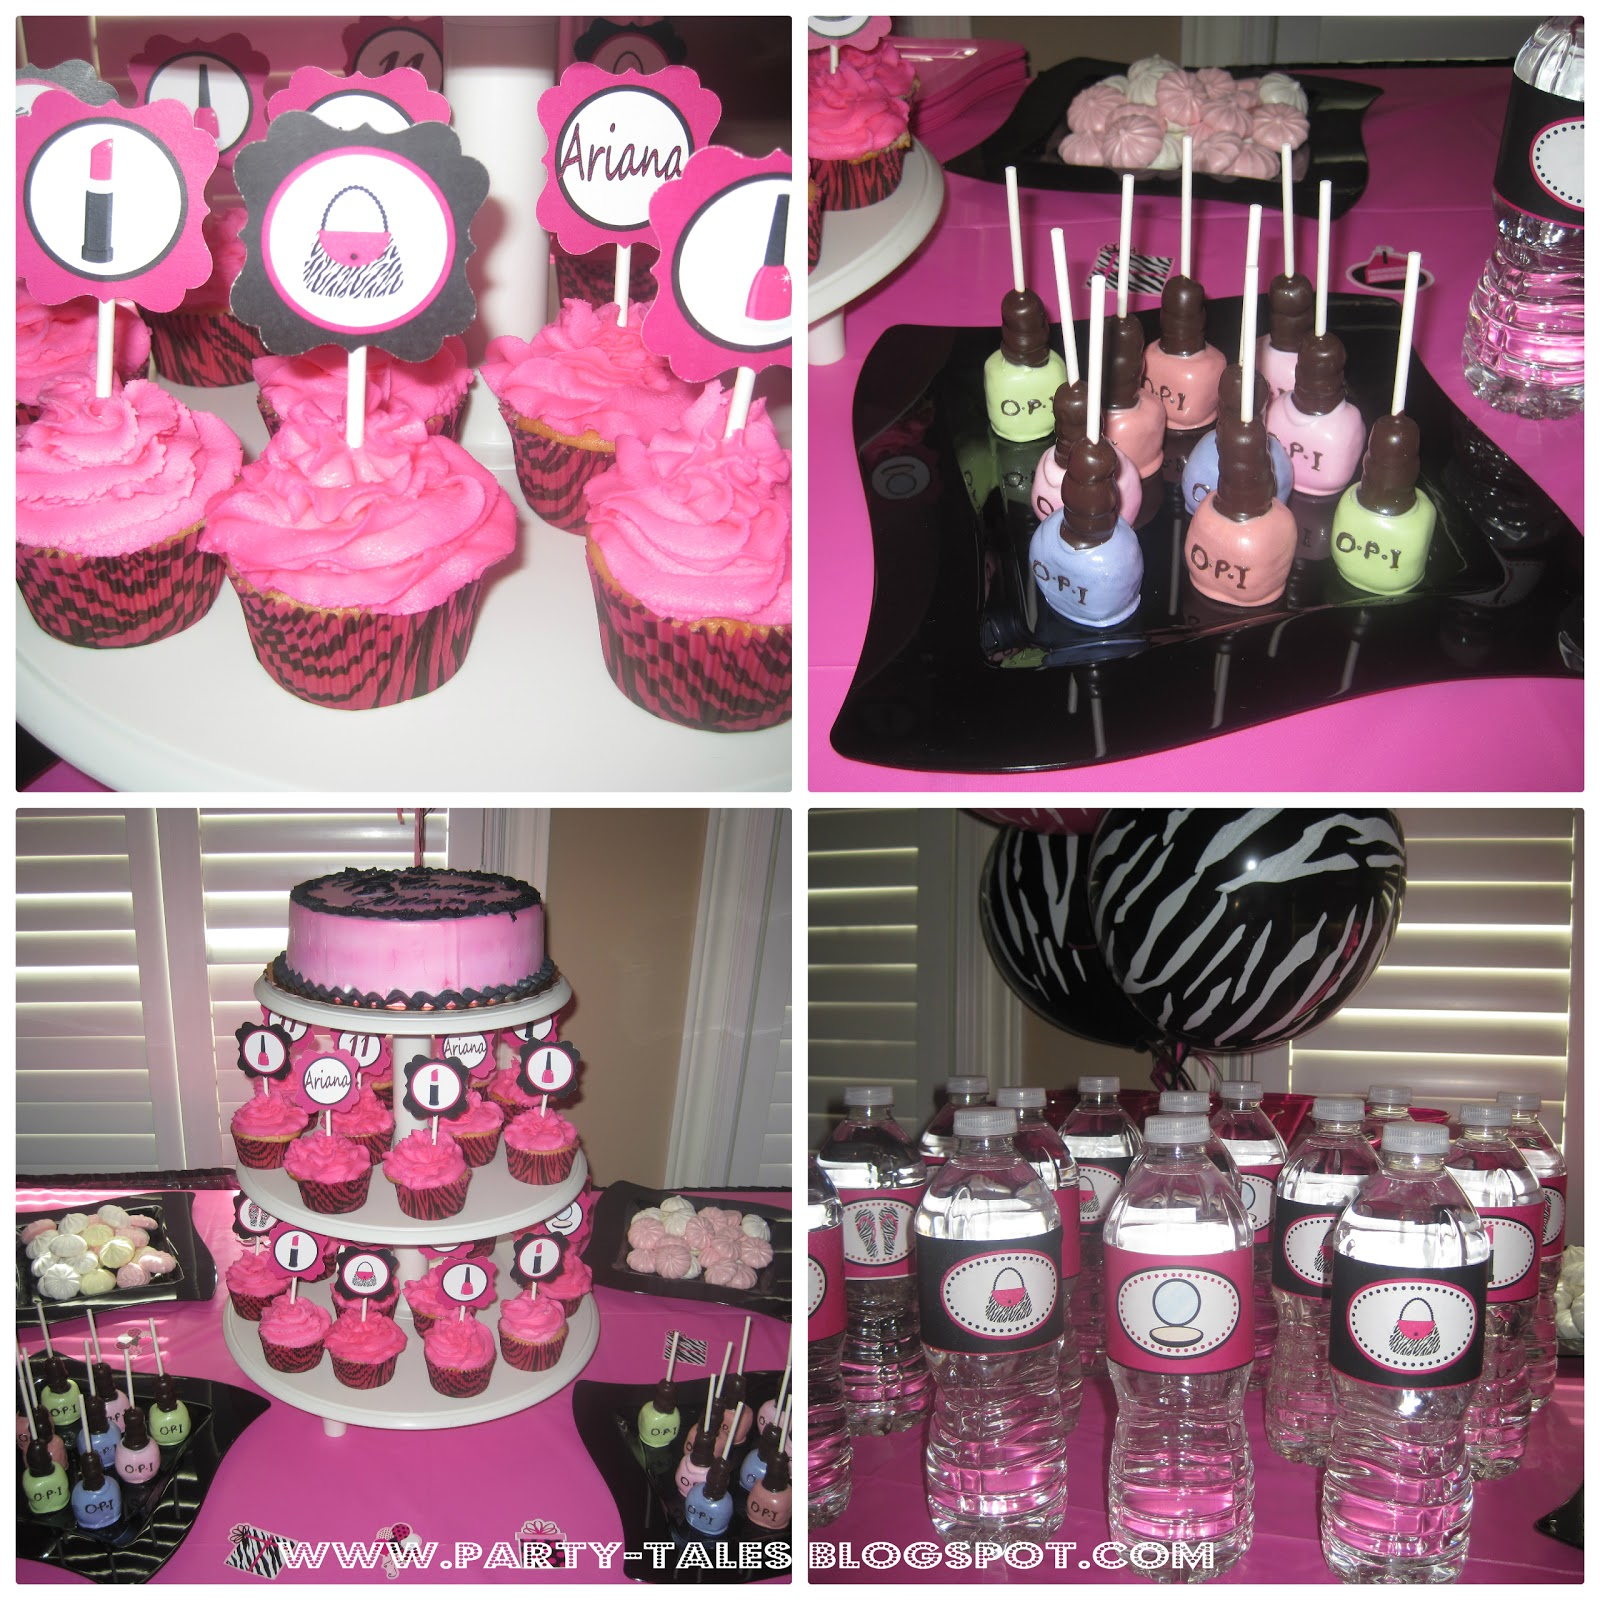 Party tales birthday party zebra print and hot pink for Home interior parties products